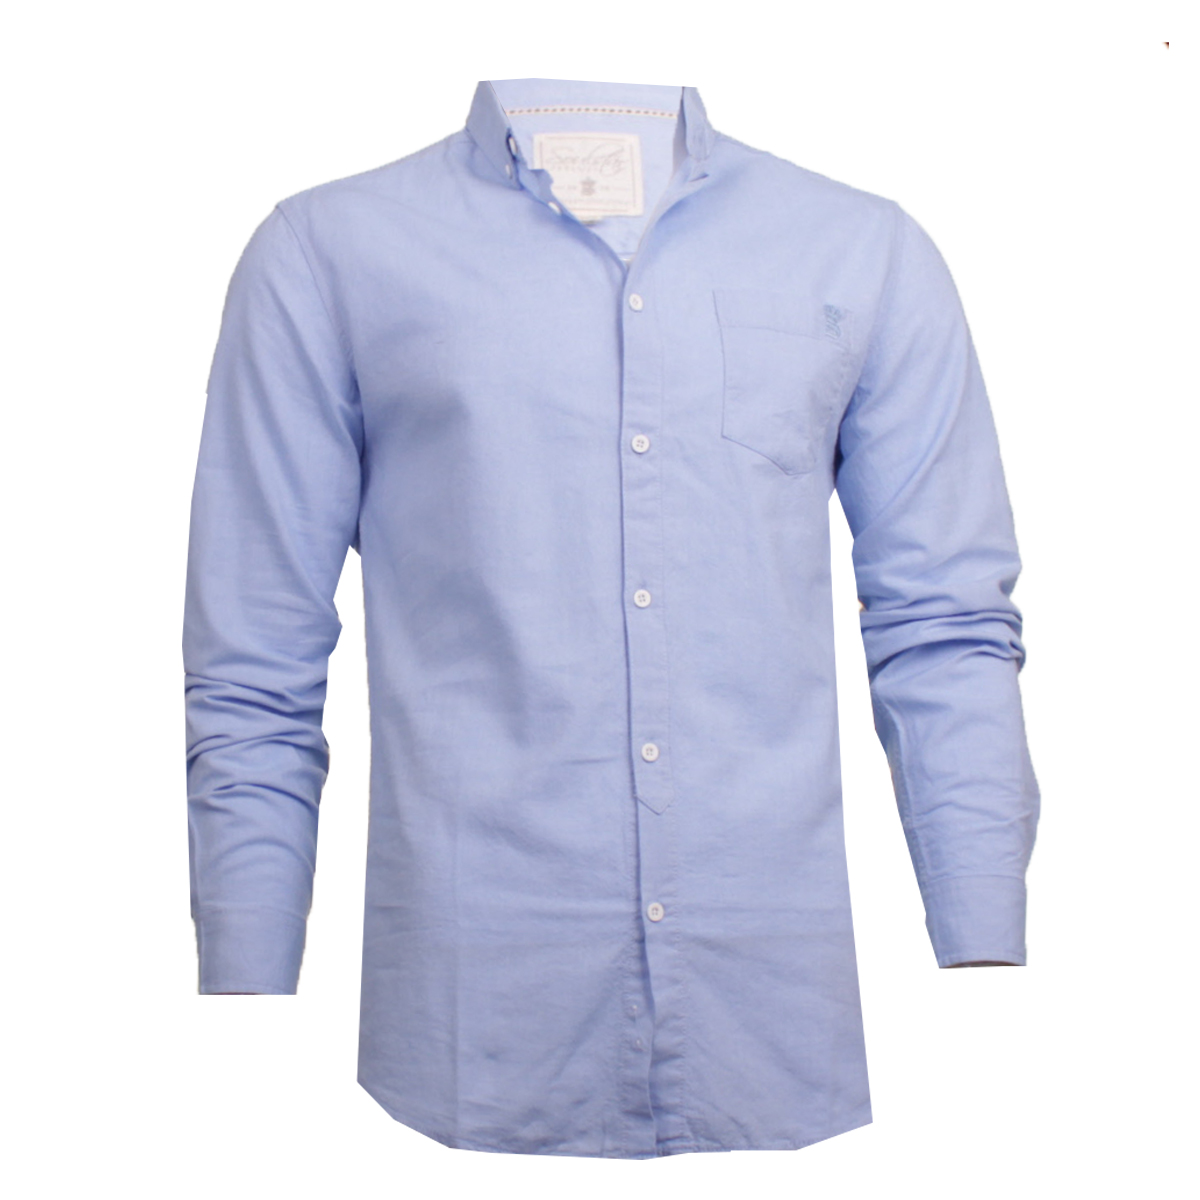 ec0a98f374a3 Sentinel Mens Soul Star Long Sleeve Oxford Button Down Collar Summer Casual  Shirt Pastel